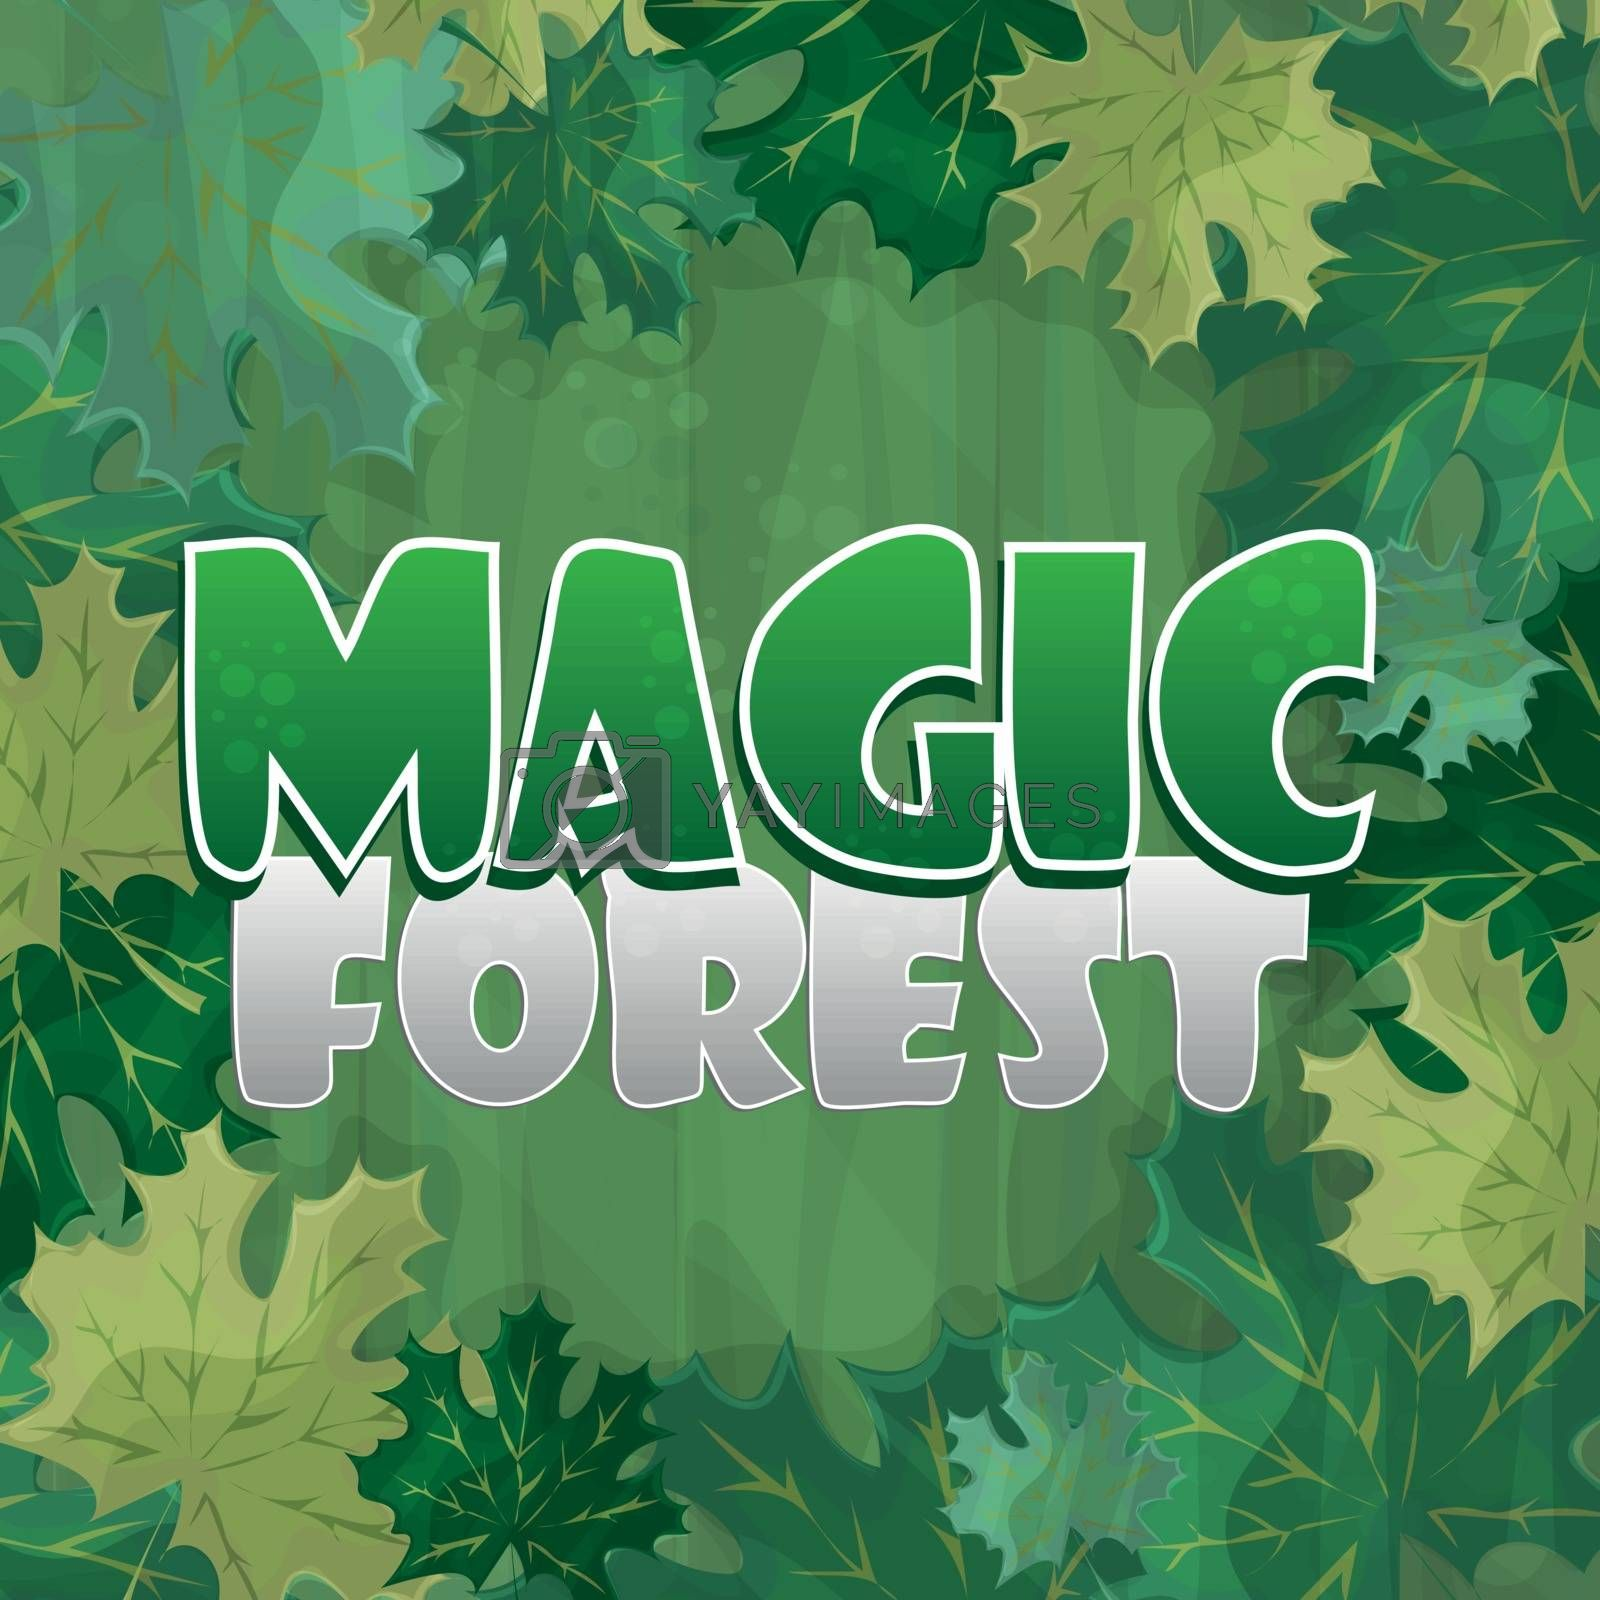 Frame for text decoration. Enchanted forest with green maple leaf - cartoon by Natali Brill